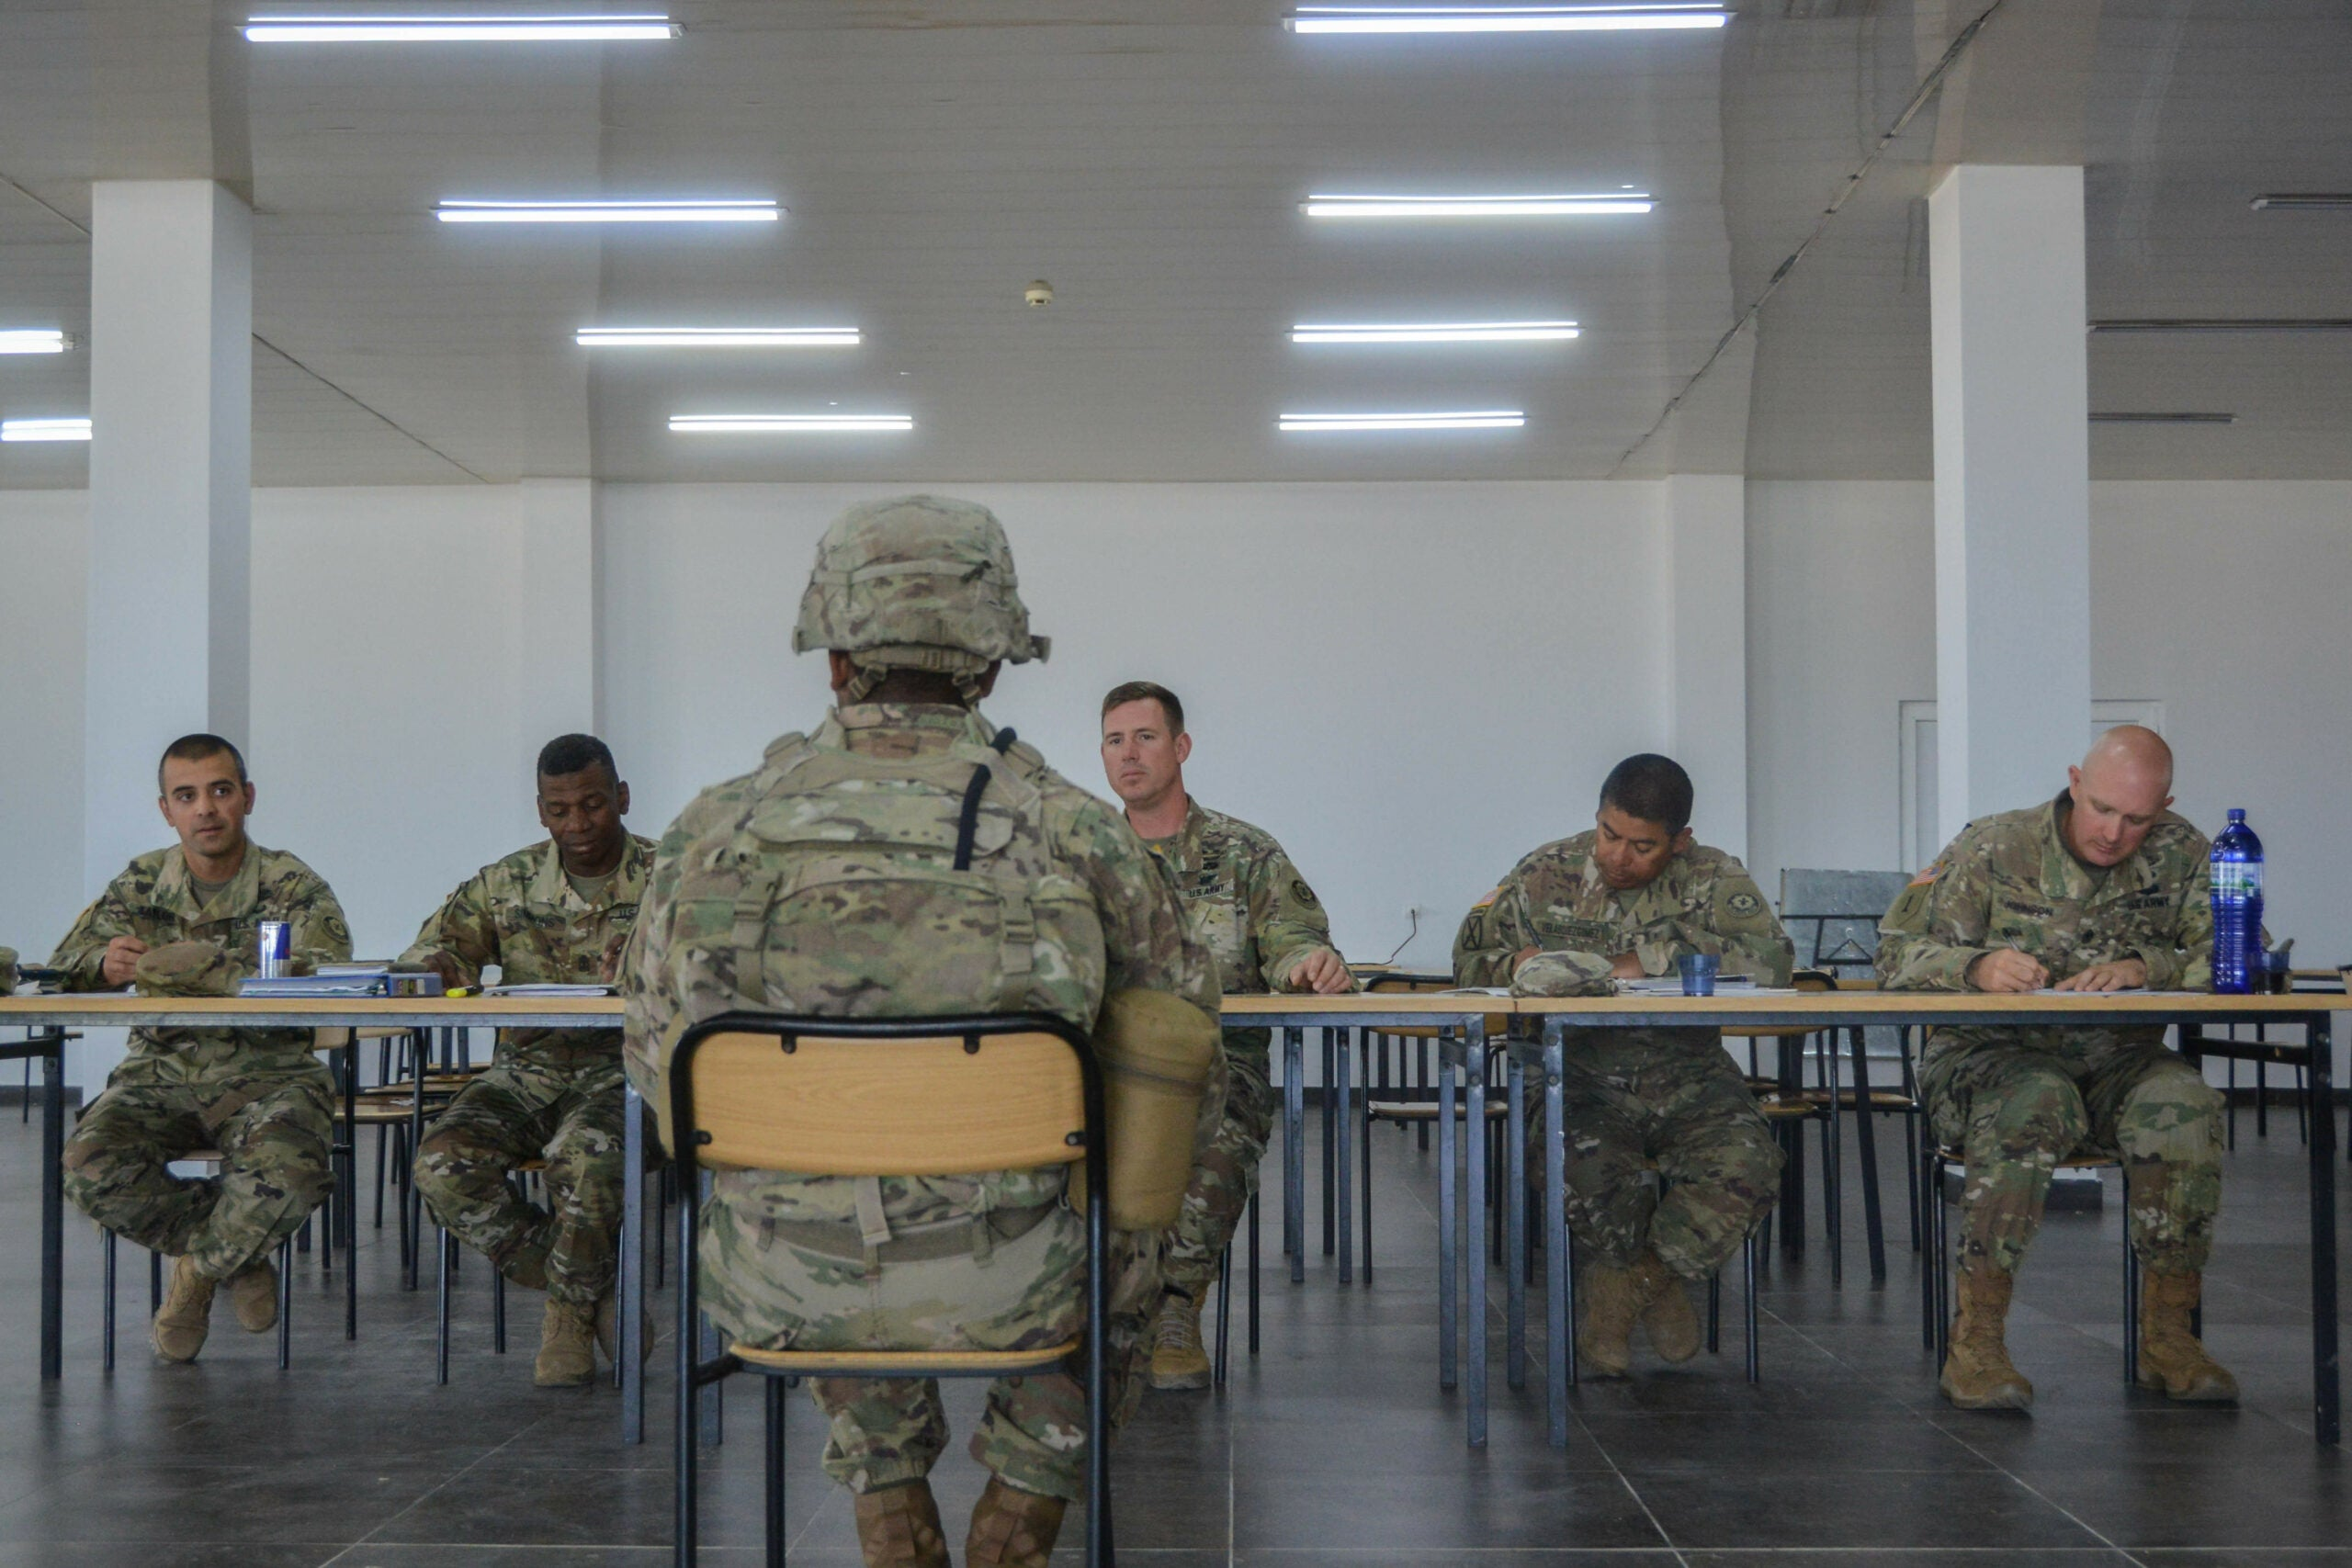 Army selection boards for promotions, Army War College, and more suspended until May due to new travel restrictions